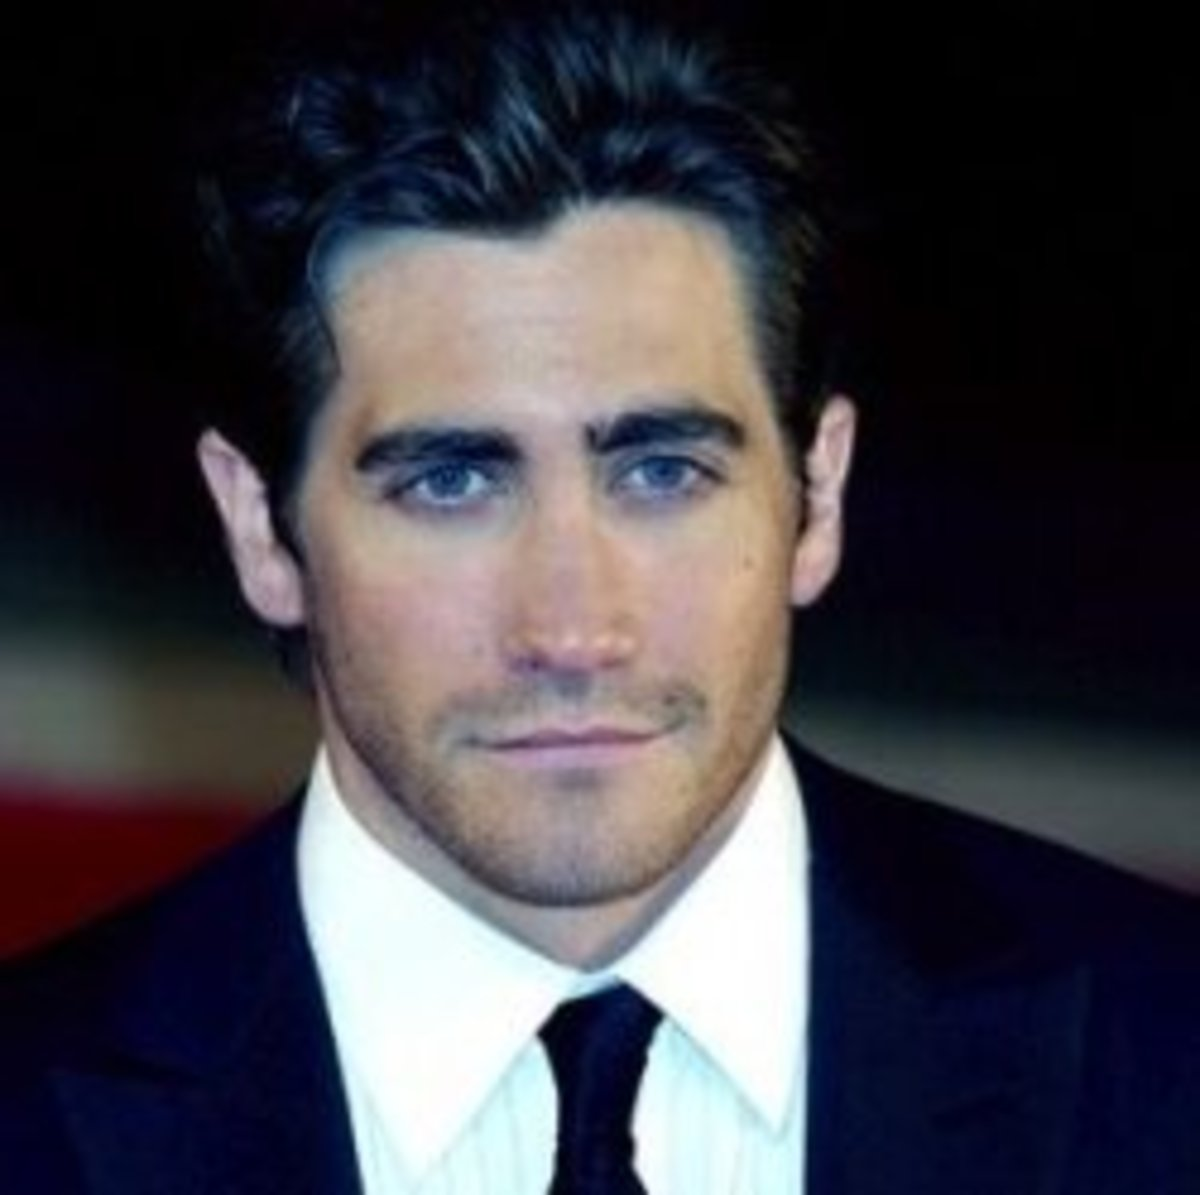 Ten Best Jake Gyllenhaal Movies